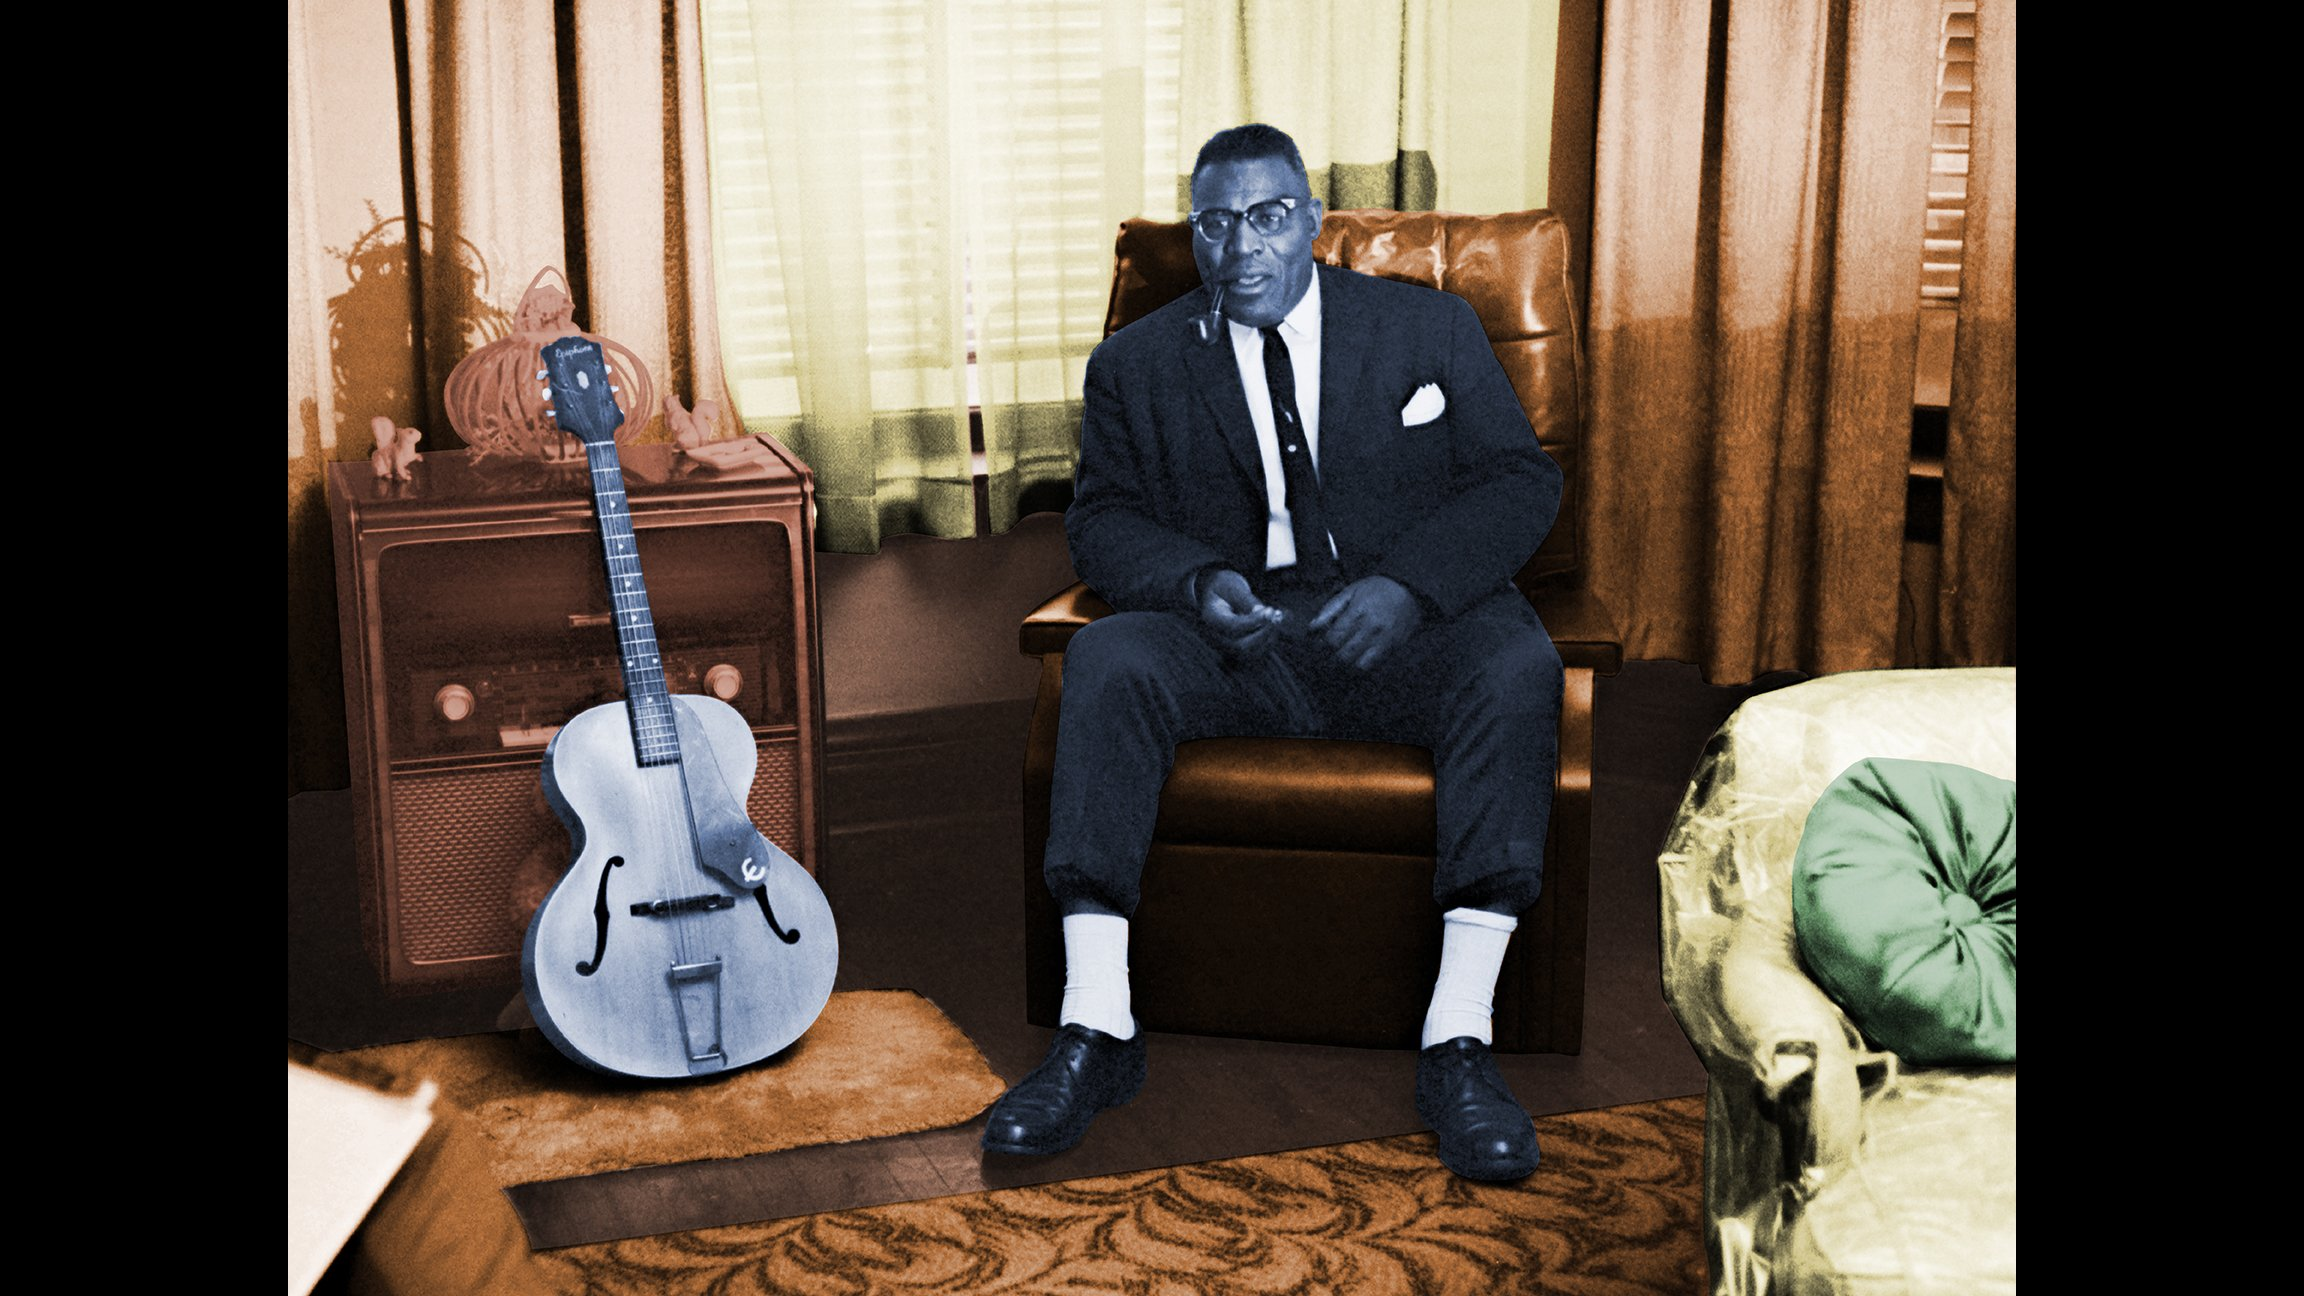 History Museum Highlights Photographer's Exploration of Chicago Blues